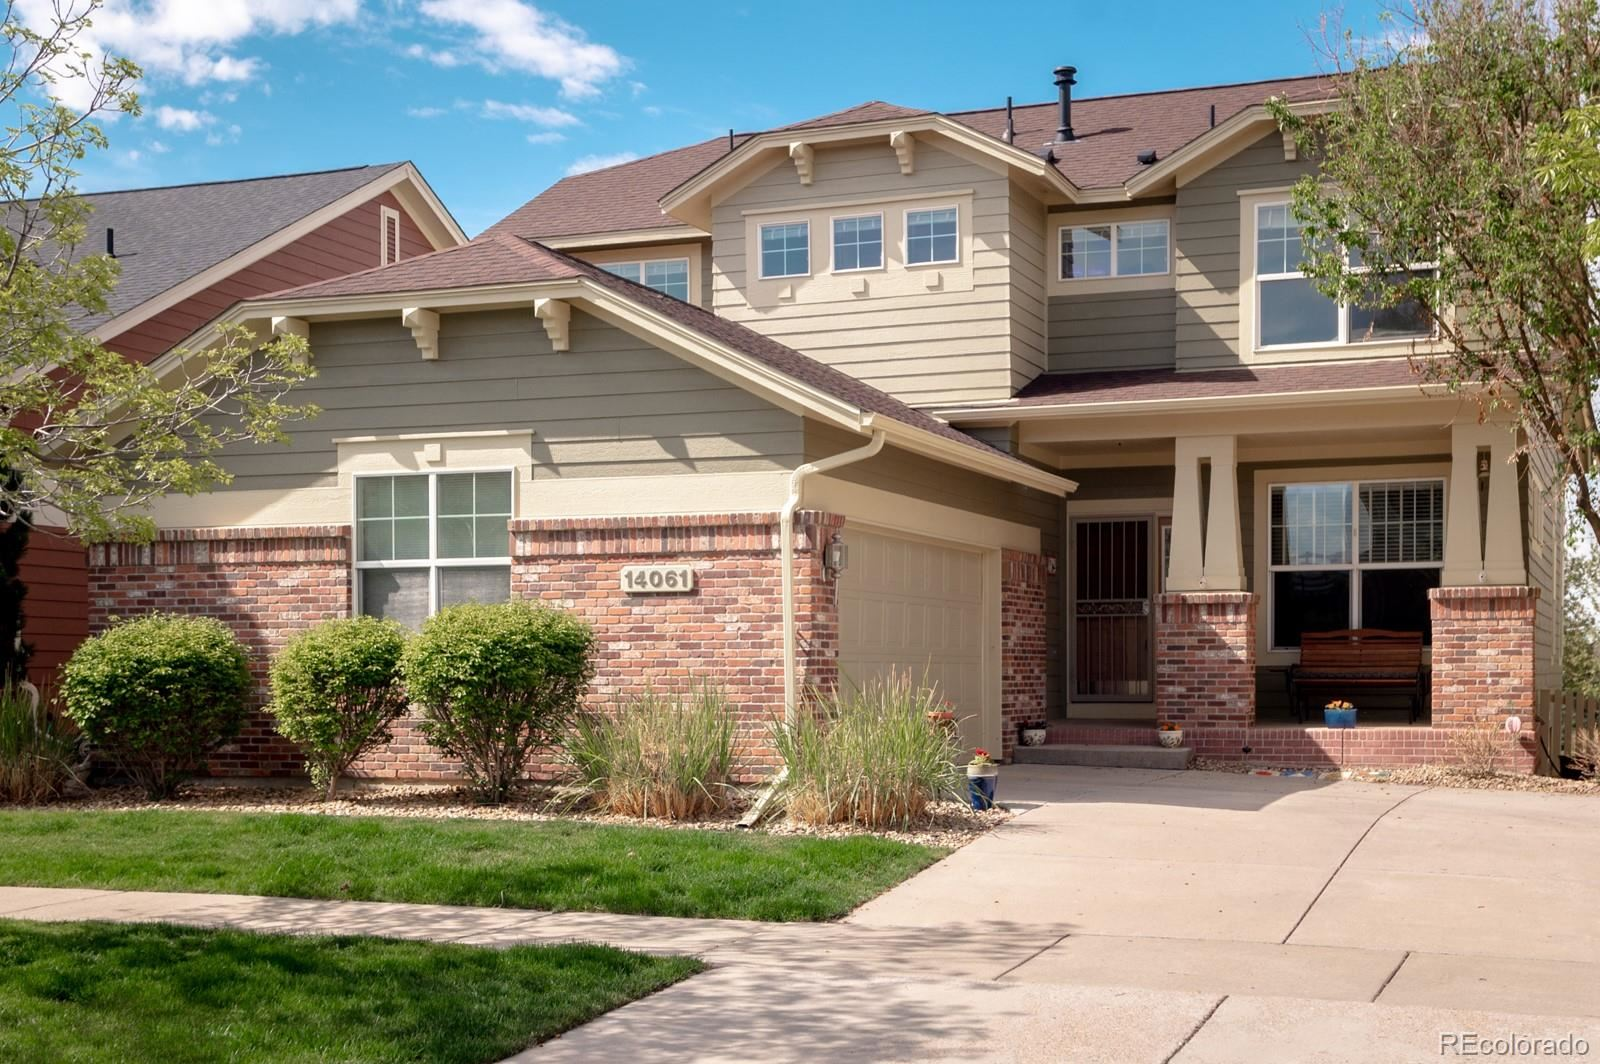 14061 W 83rd Place, Arvada, CO 80005 - #: 7974956